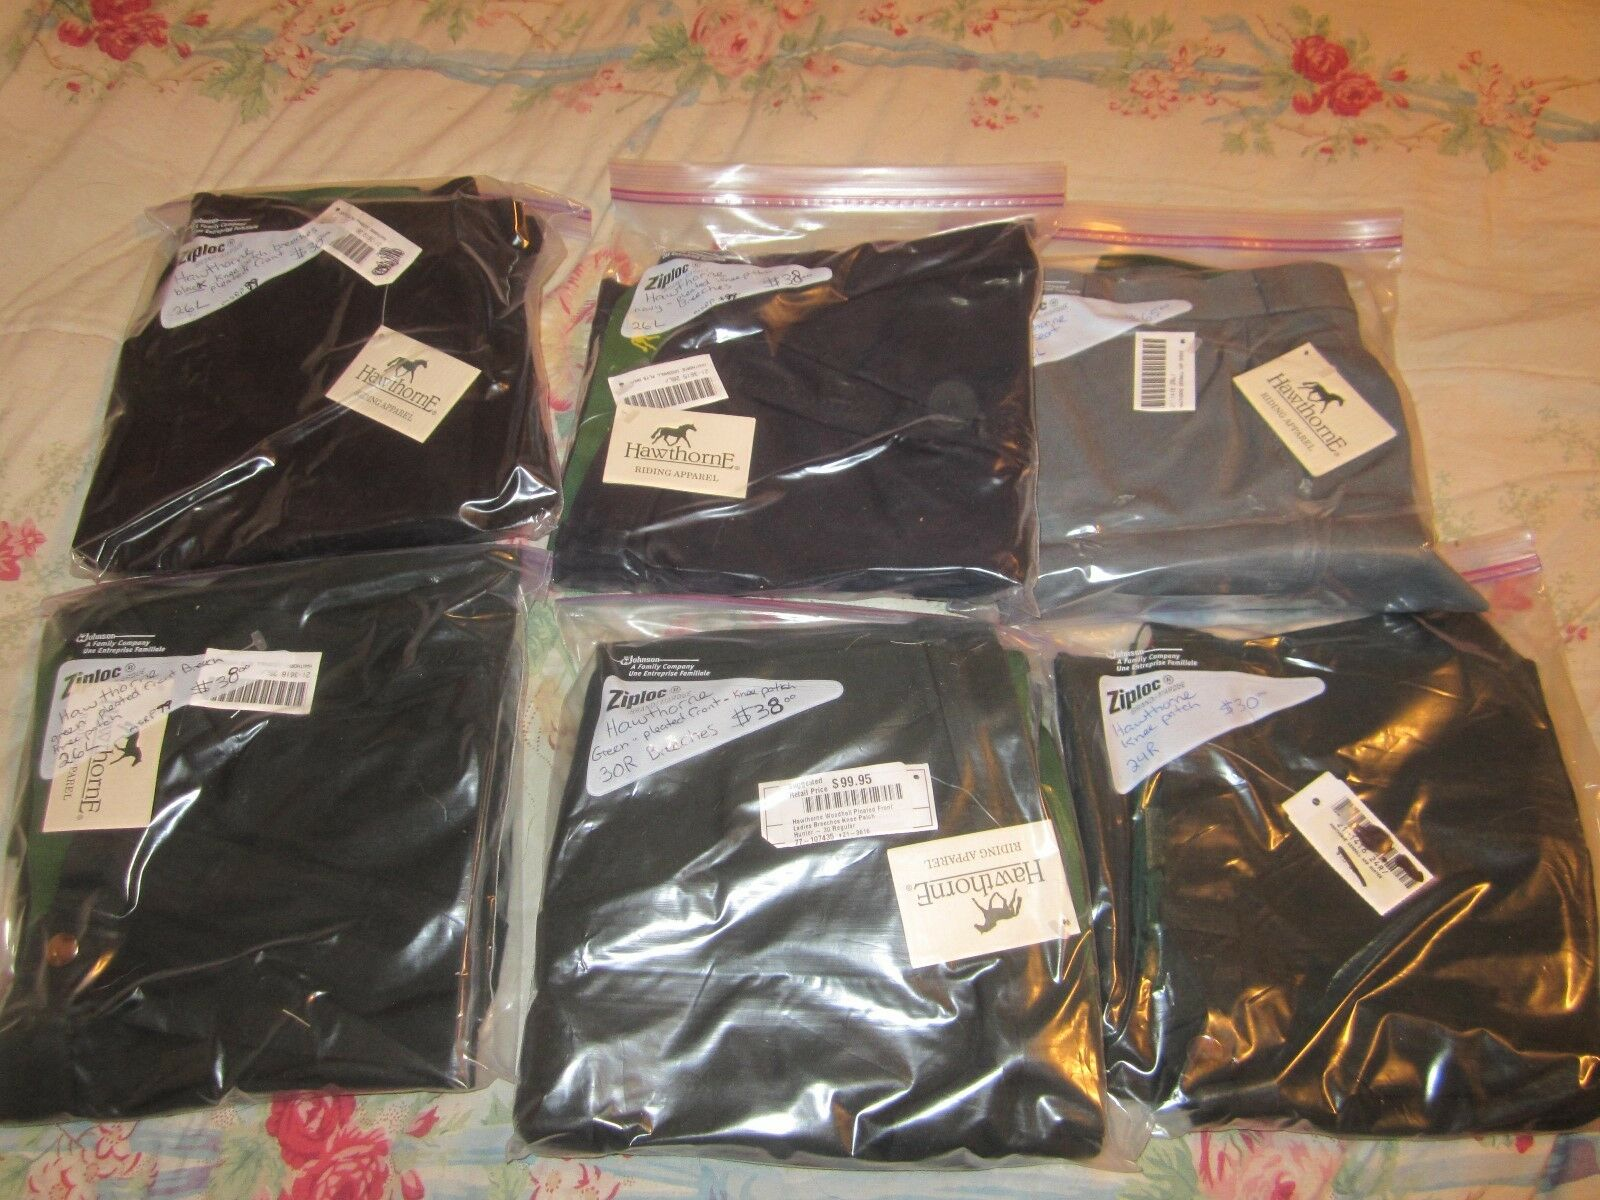 Reduced  NWT 6 PAIR HAWTHORNE BREECHES  26L, 30R, 24R   SELLERS LOT, CLEARANCE  up to 50% off